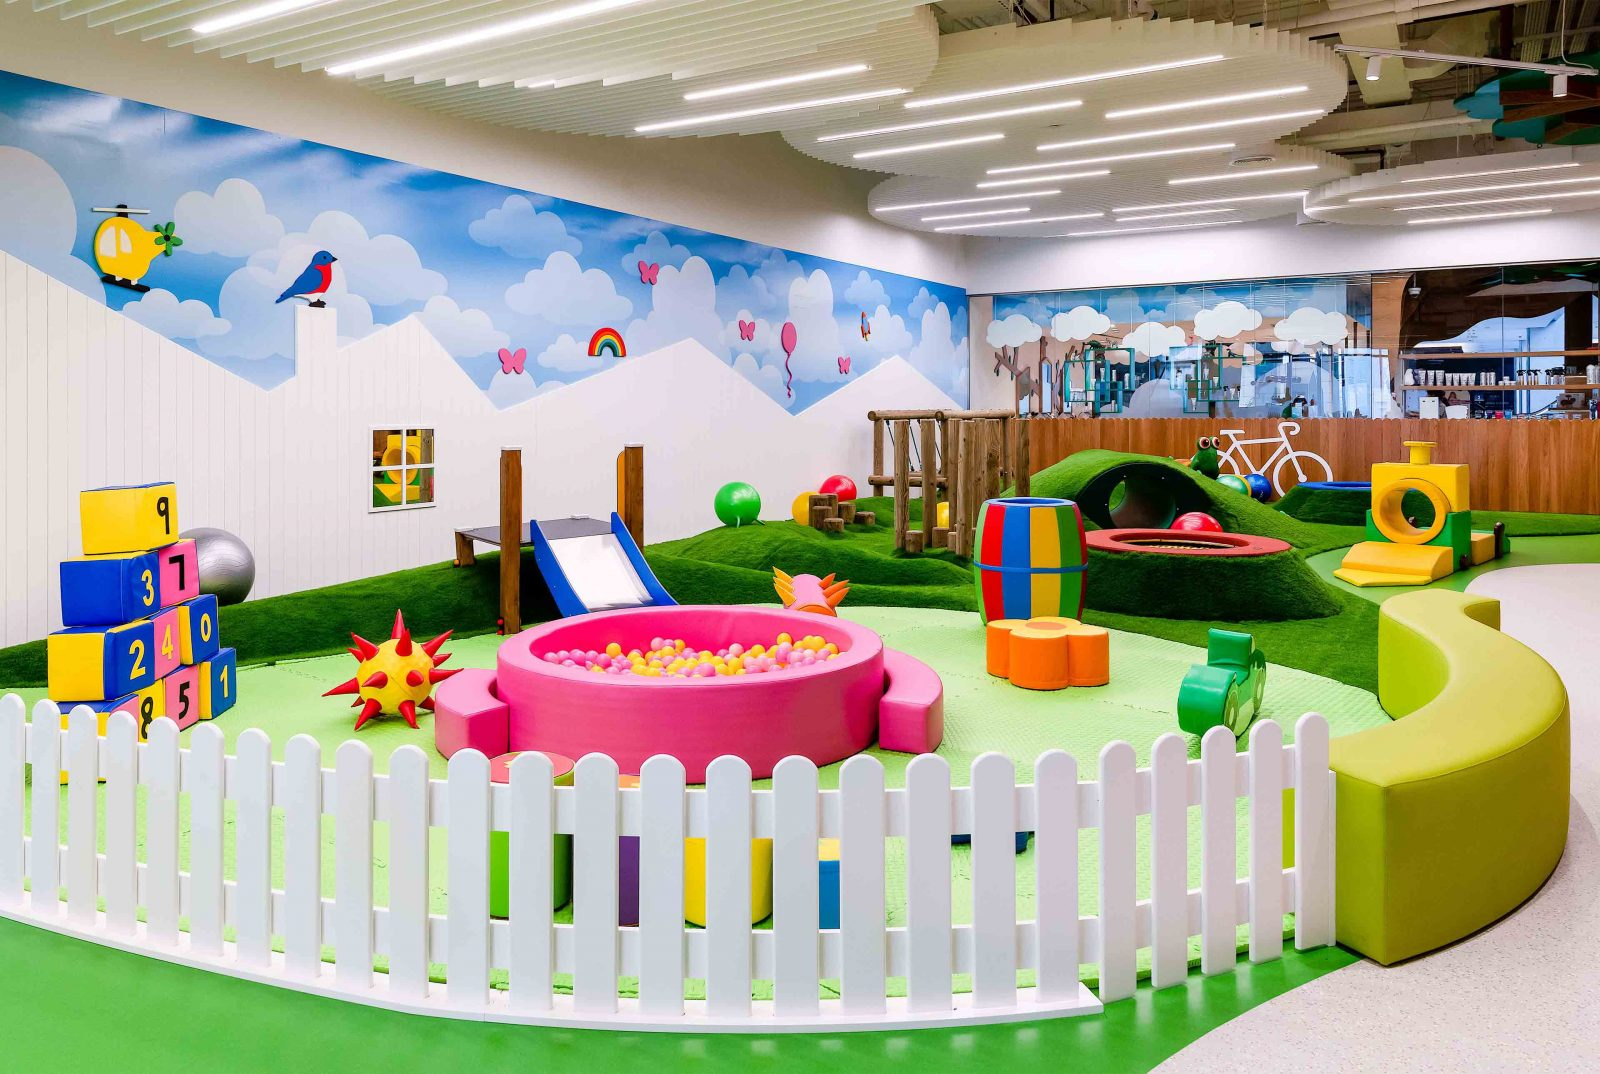 Lighting Design Children's Indoor Soft Play Park Fun Colour Interior Circular Ceiling Lights Dubai Consultants Studio N